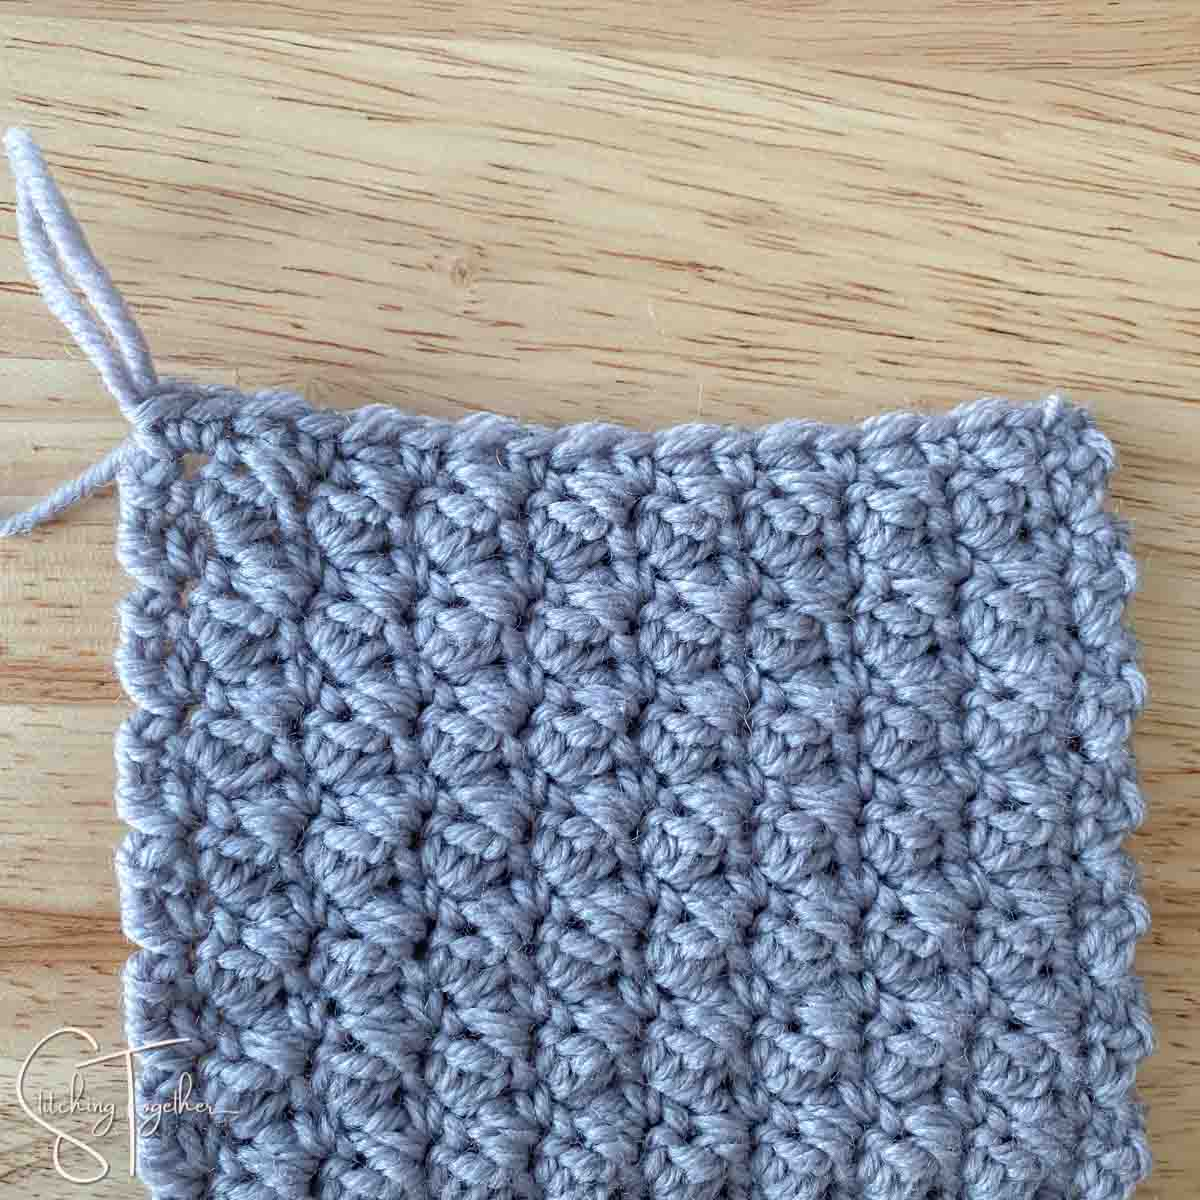 finished swatch of the suzette stitch